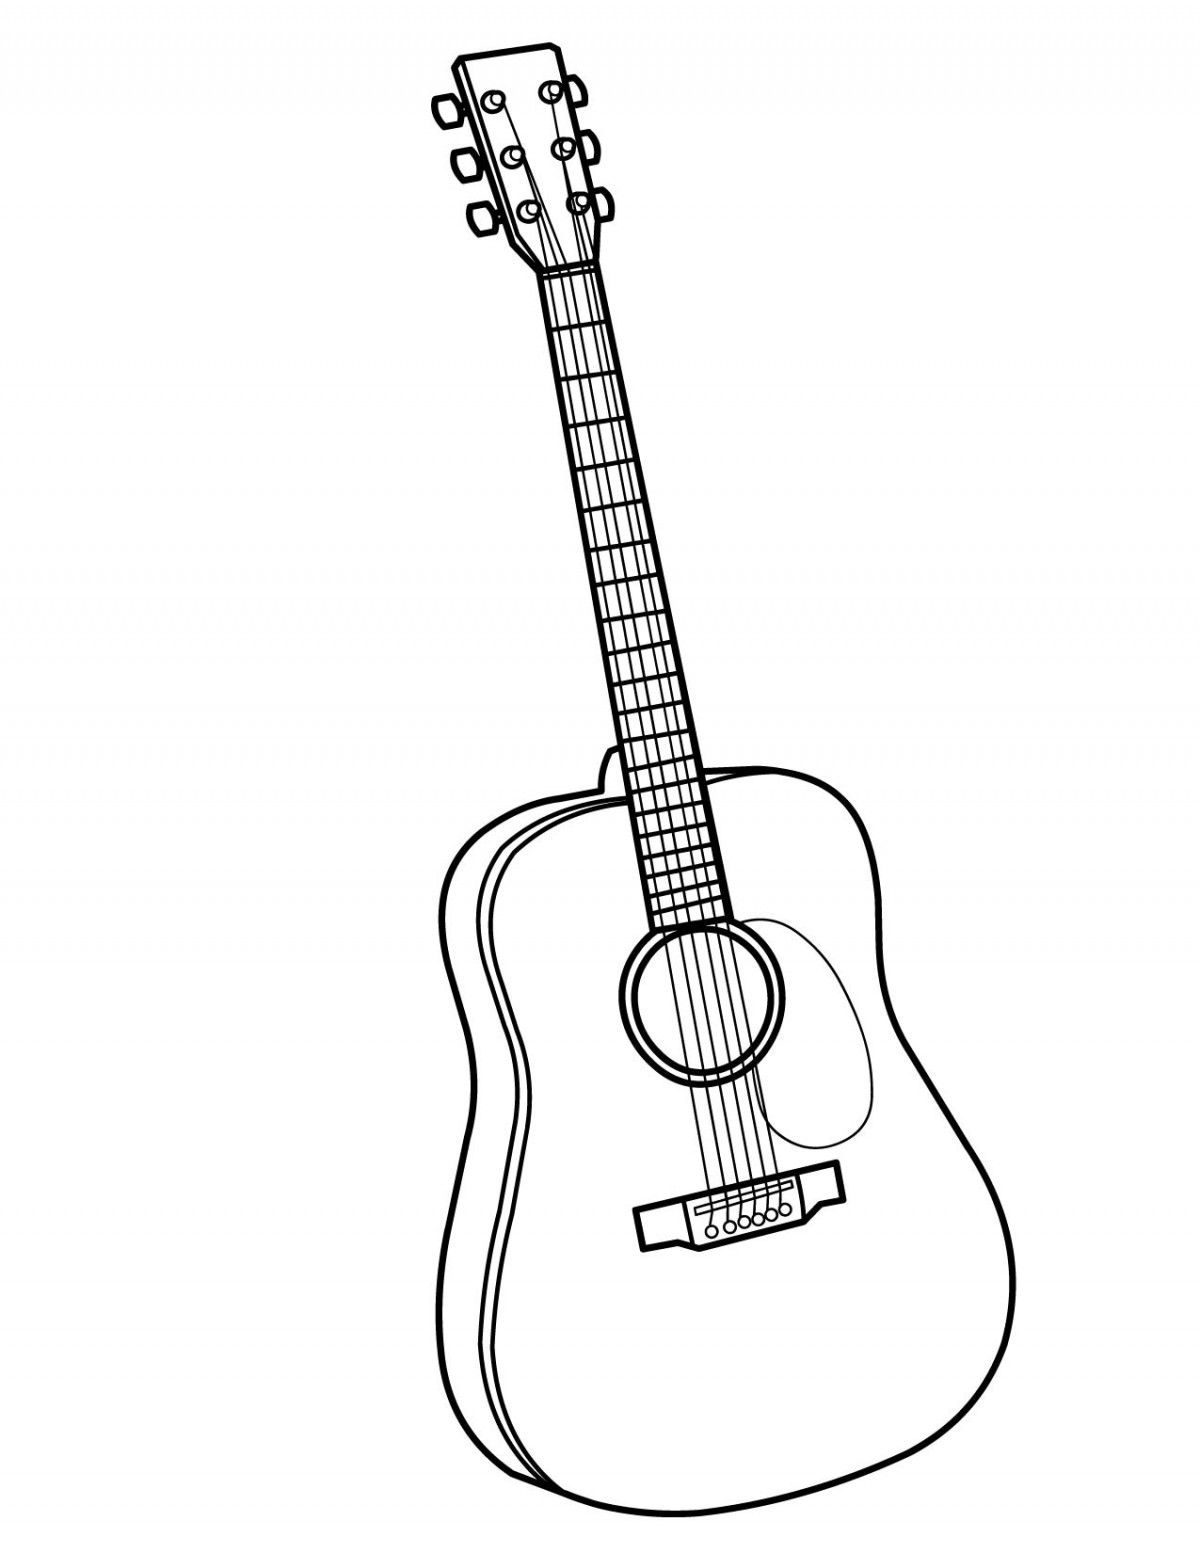 coloring page guitar guitar drawing easy at getdrawings free download guitar page coloring